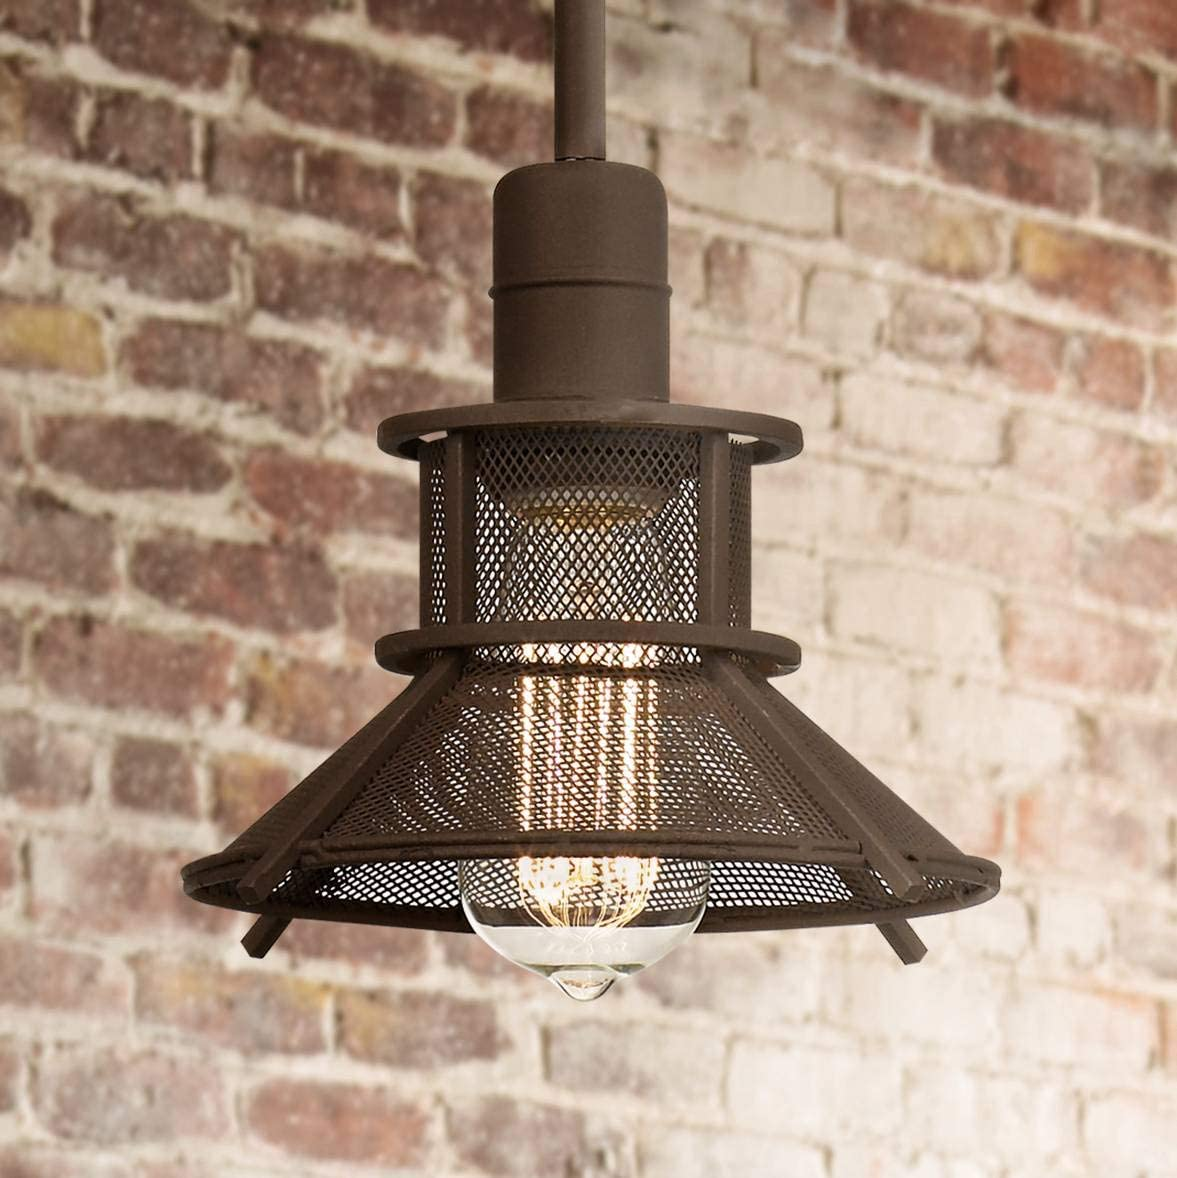 Glasgow Olde Bronze Mini Pendant Light 8 1 2 Wide Modern Industrial LED Barn Metal Mesh Shade Fixture for Kitchen Island Dining Room – Franklin Iron Works